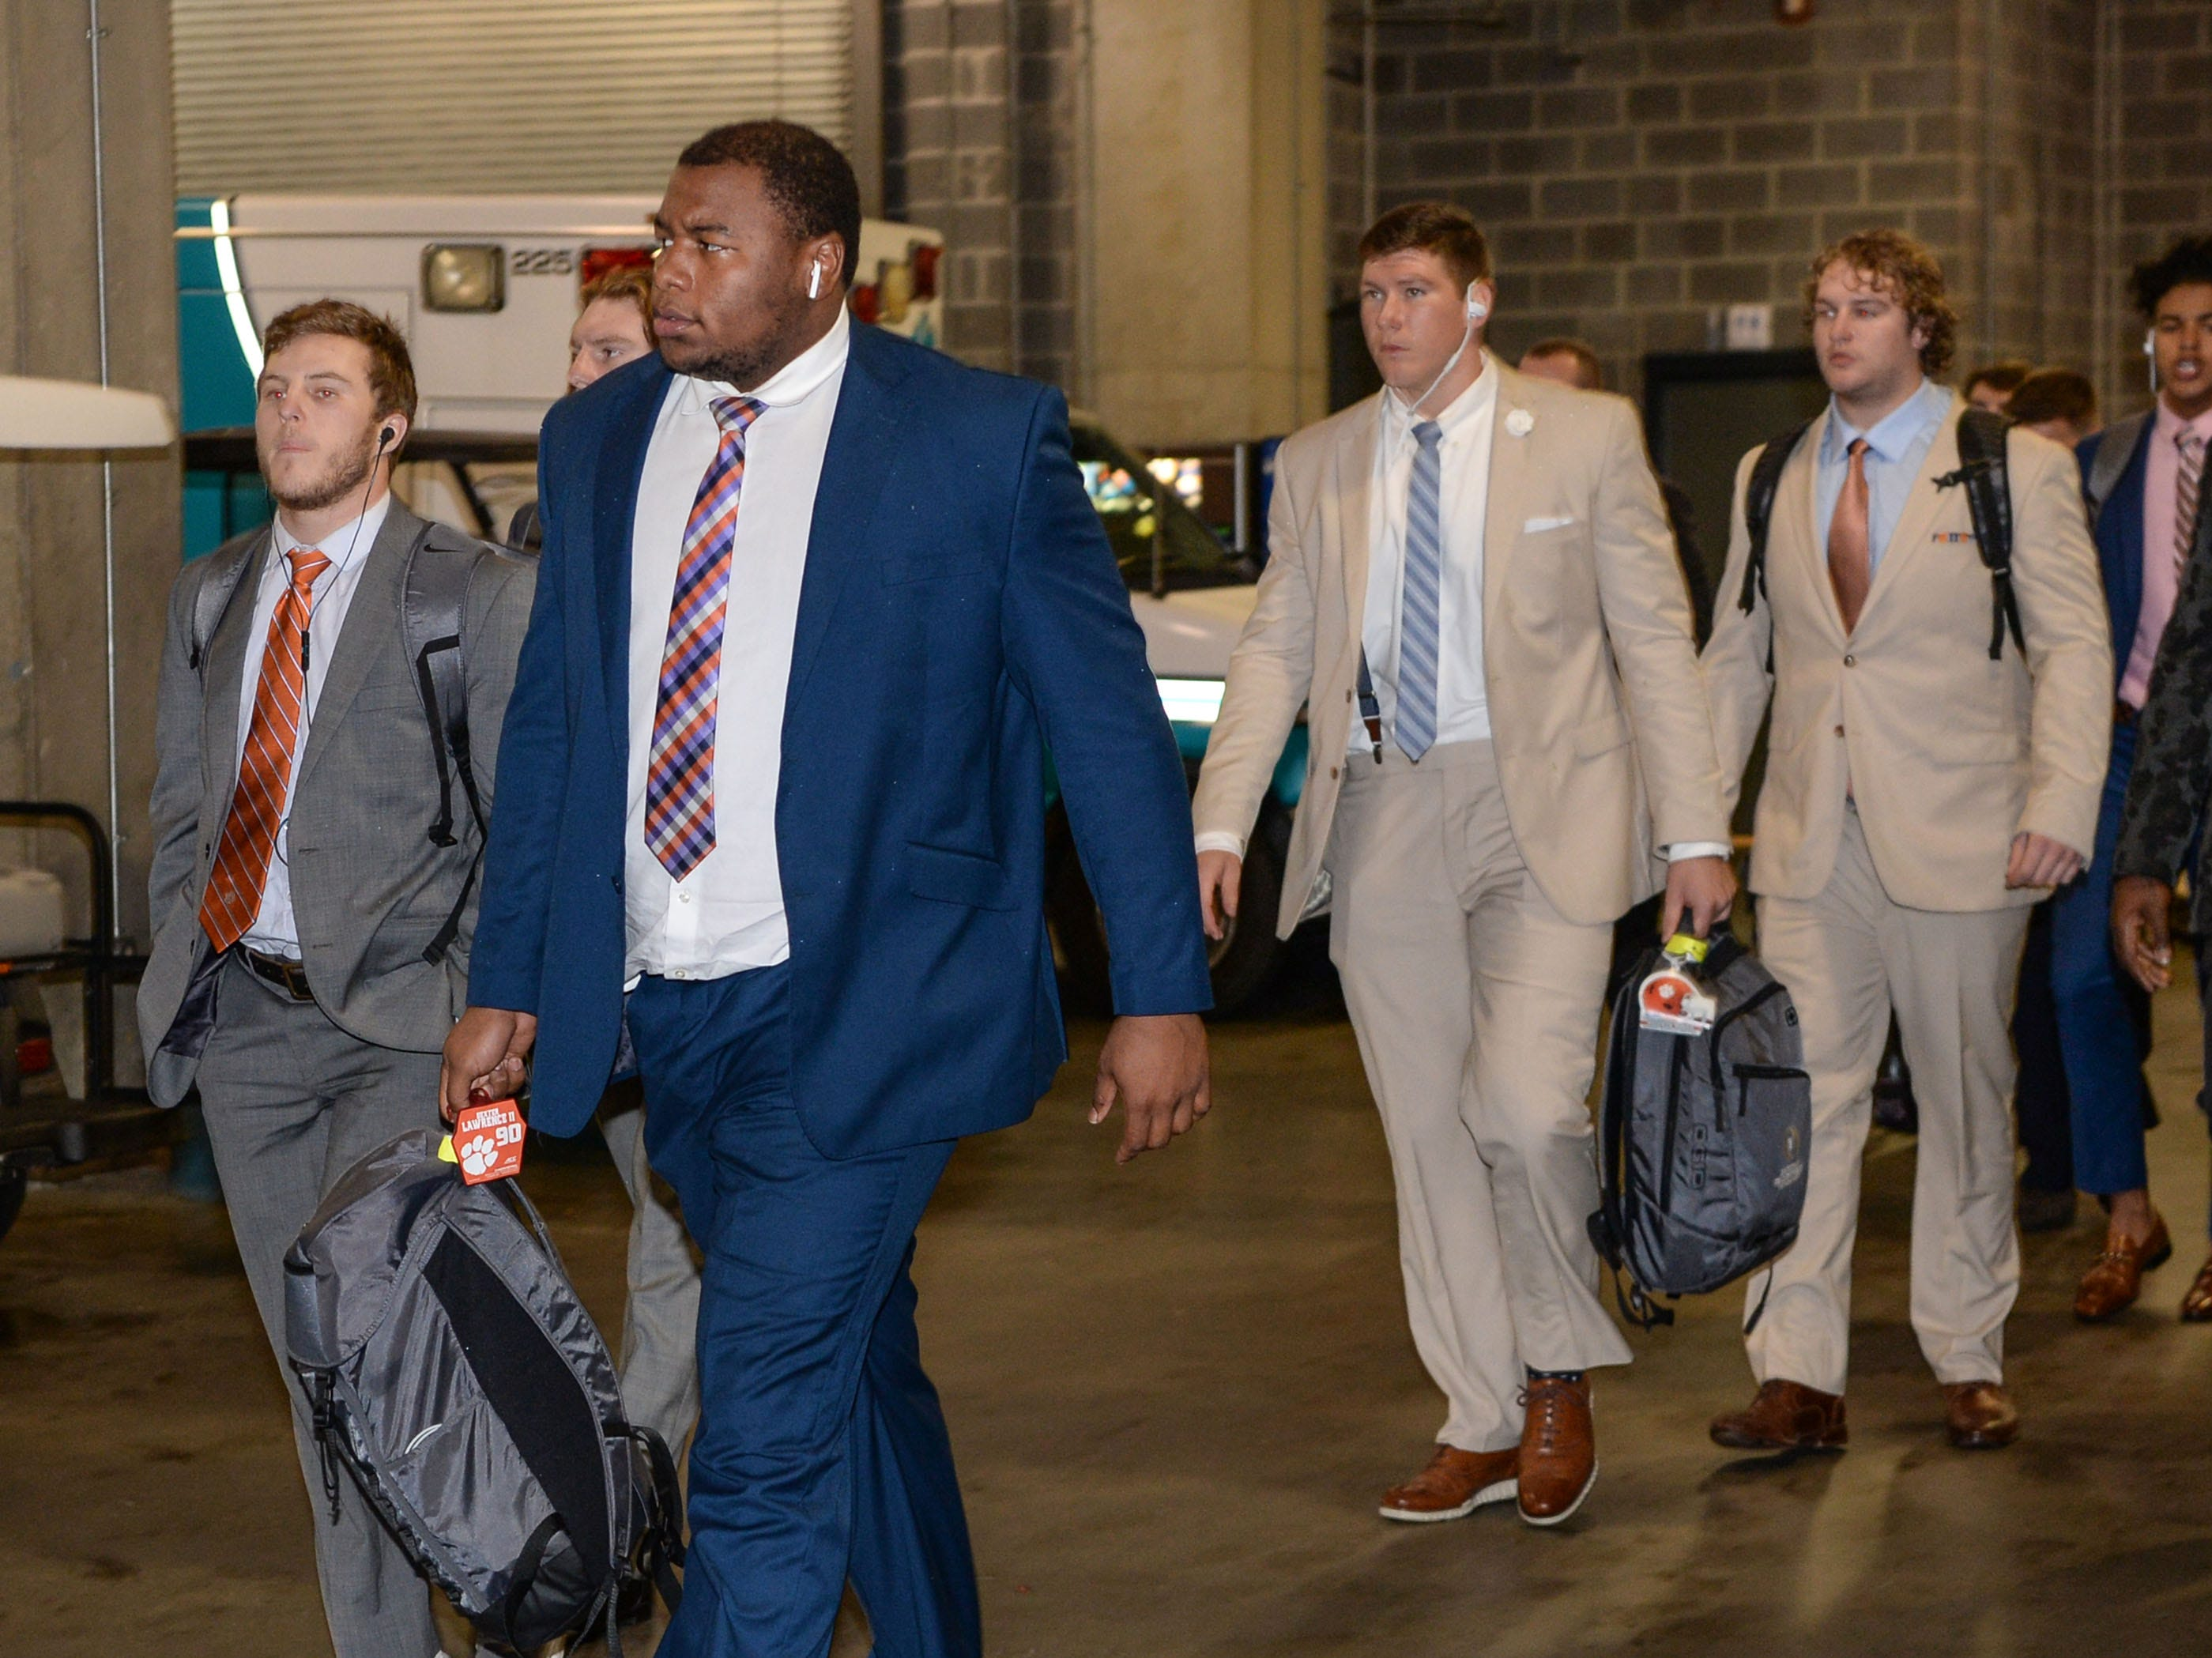 Clemson defensive lineman Dexter Lawrence (90) arrives before the game with Pittsburgh at the Dr. Pepper ACC football championship at Bank of America Stadium in Charlotte, N.C. on Saturday, December 1, 2018.